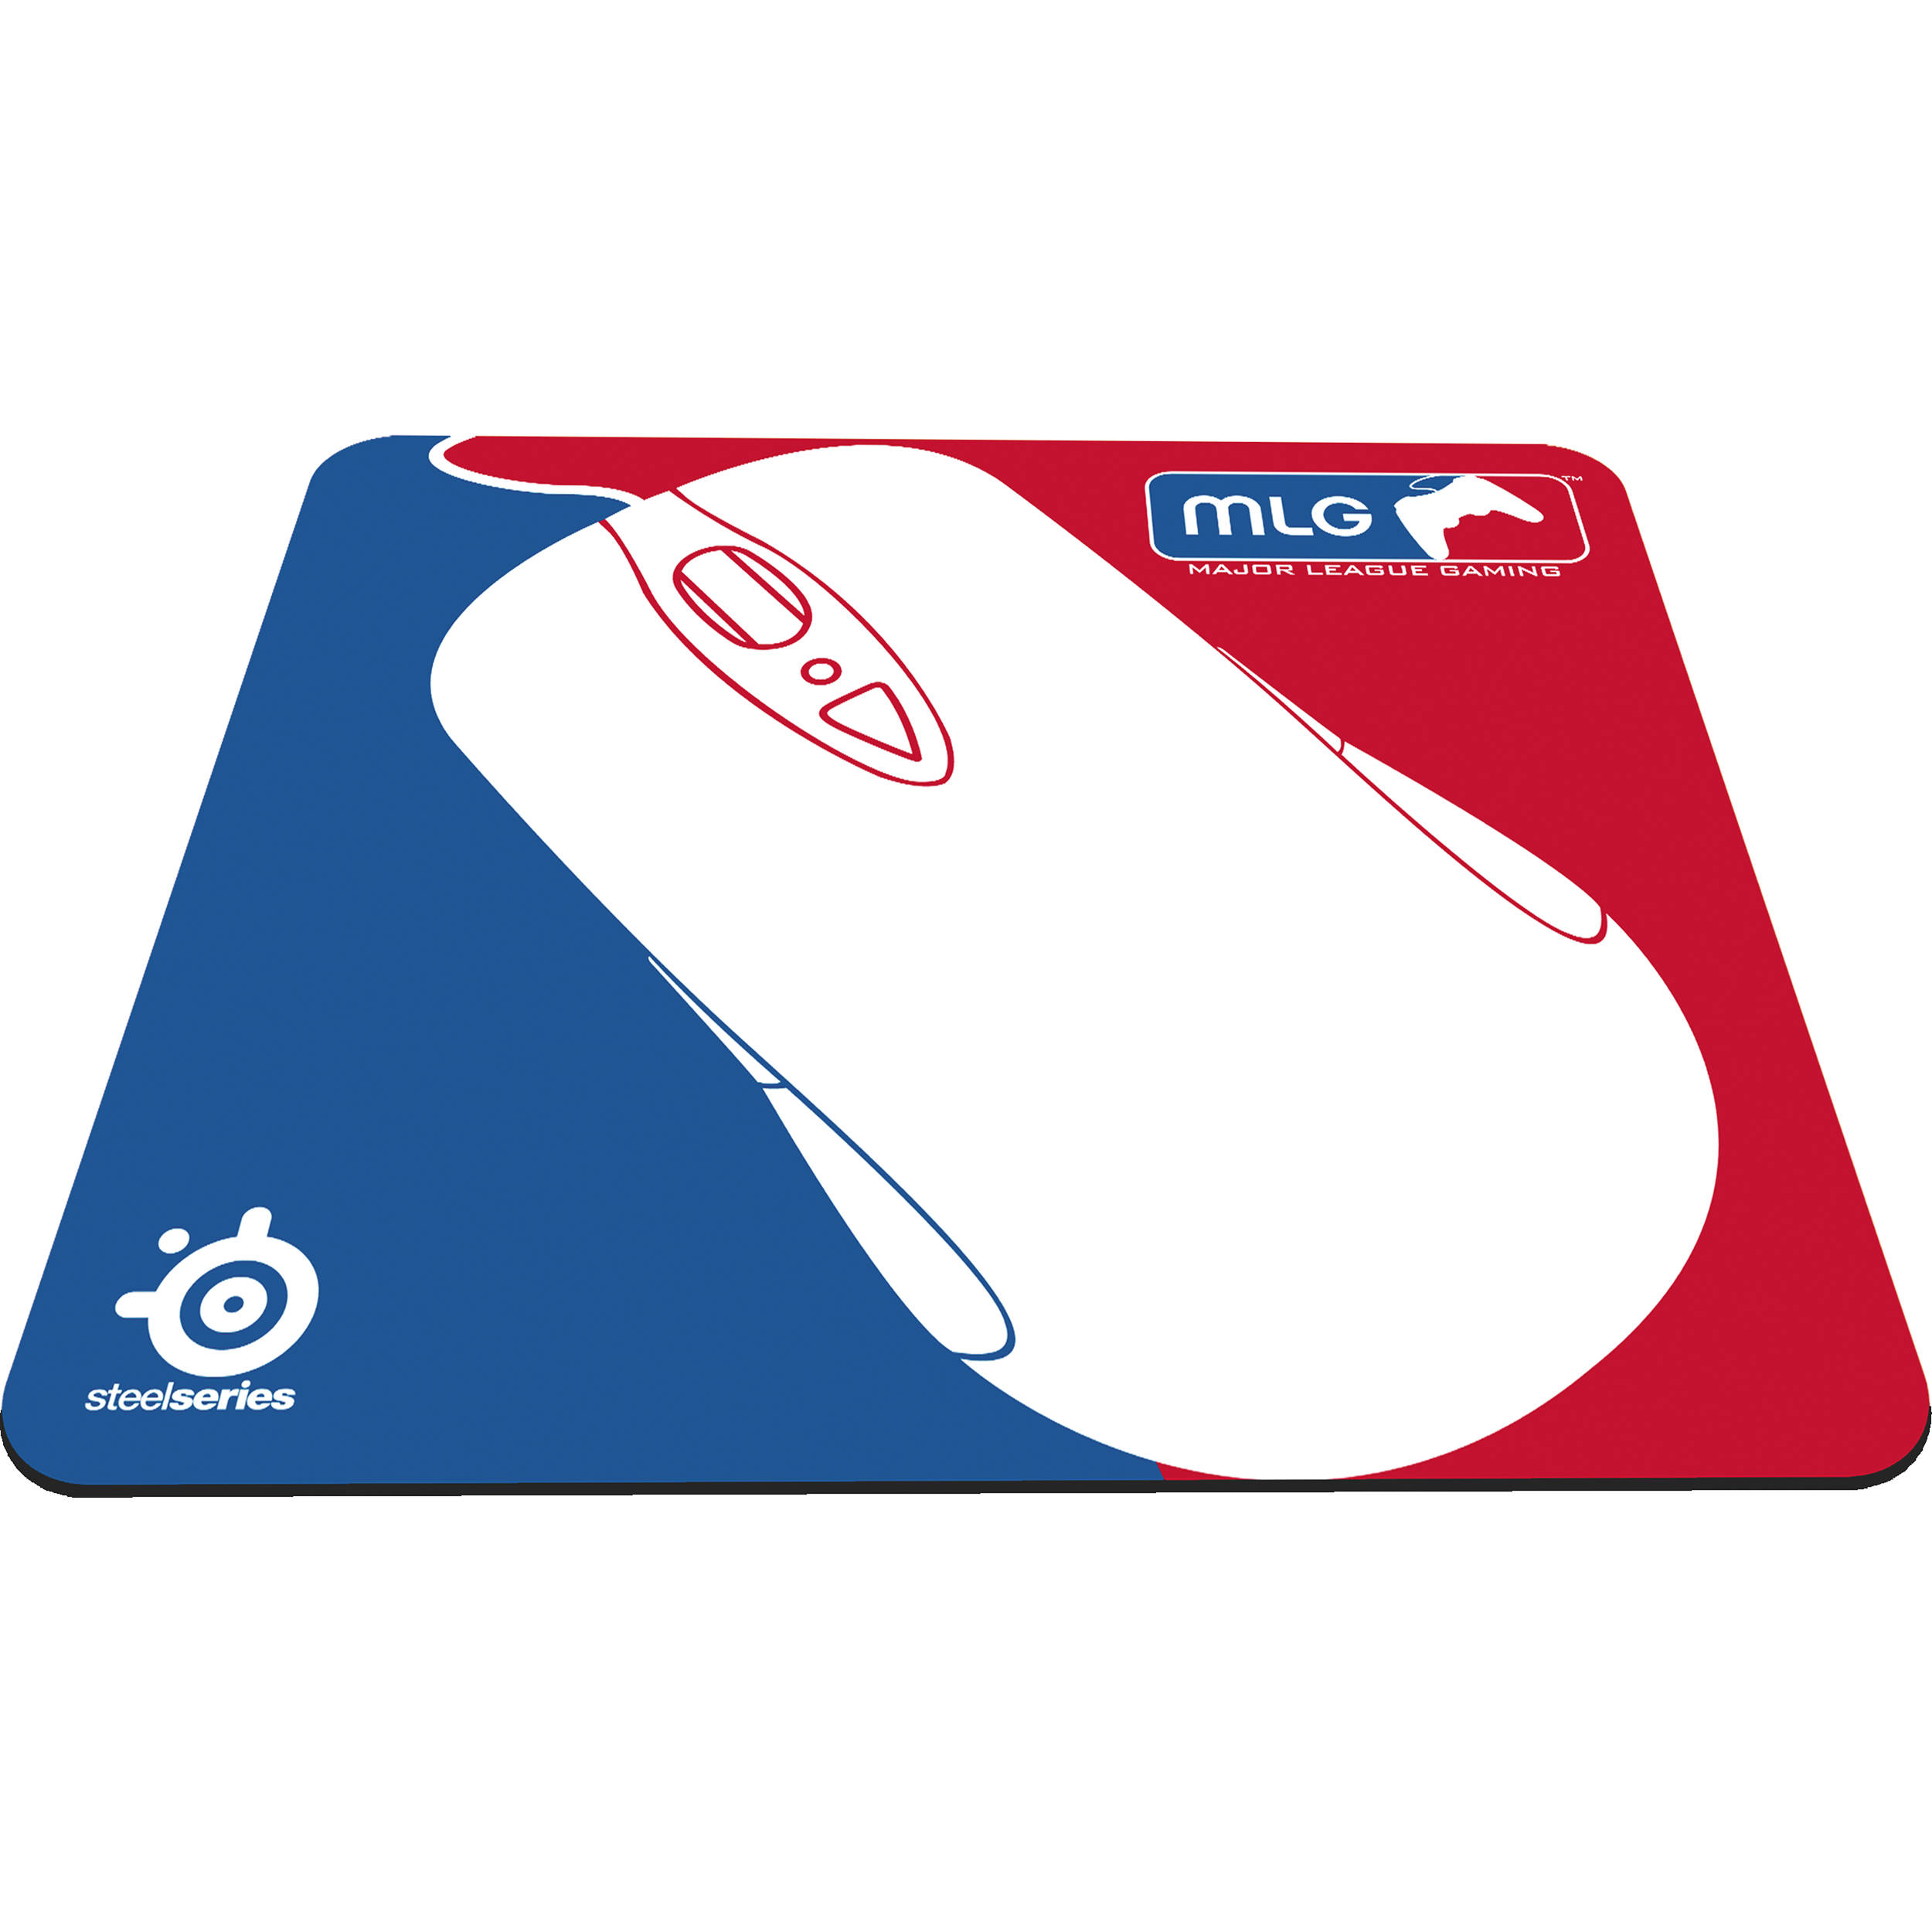 steelseries qck major league gaming mouse pad red blue 63323